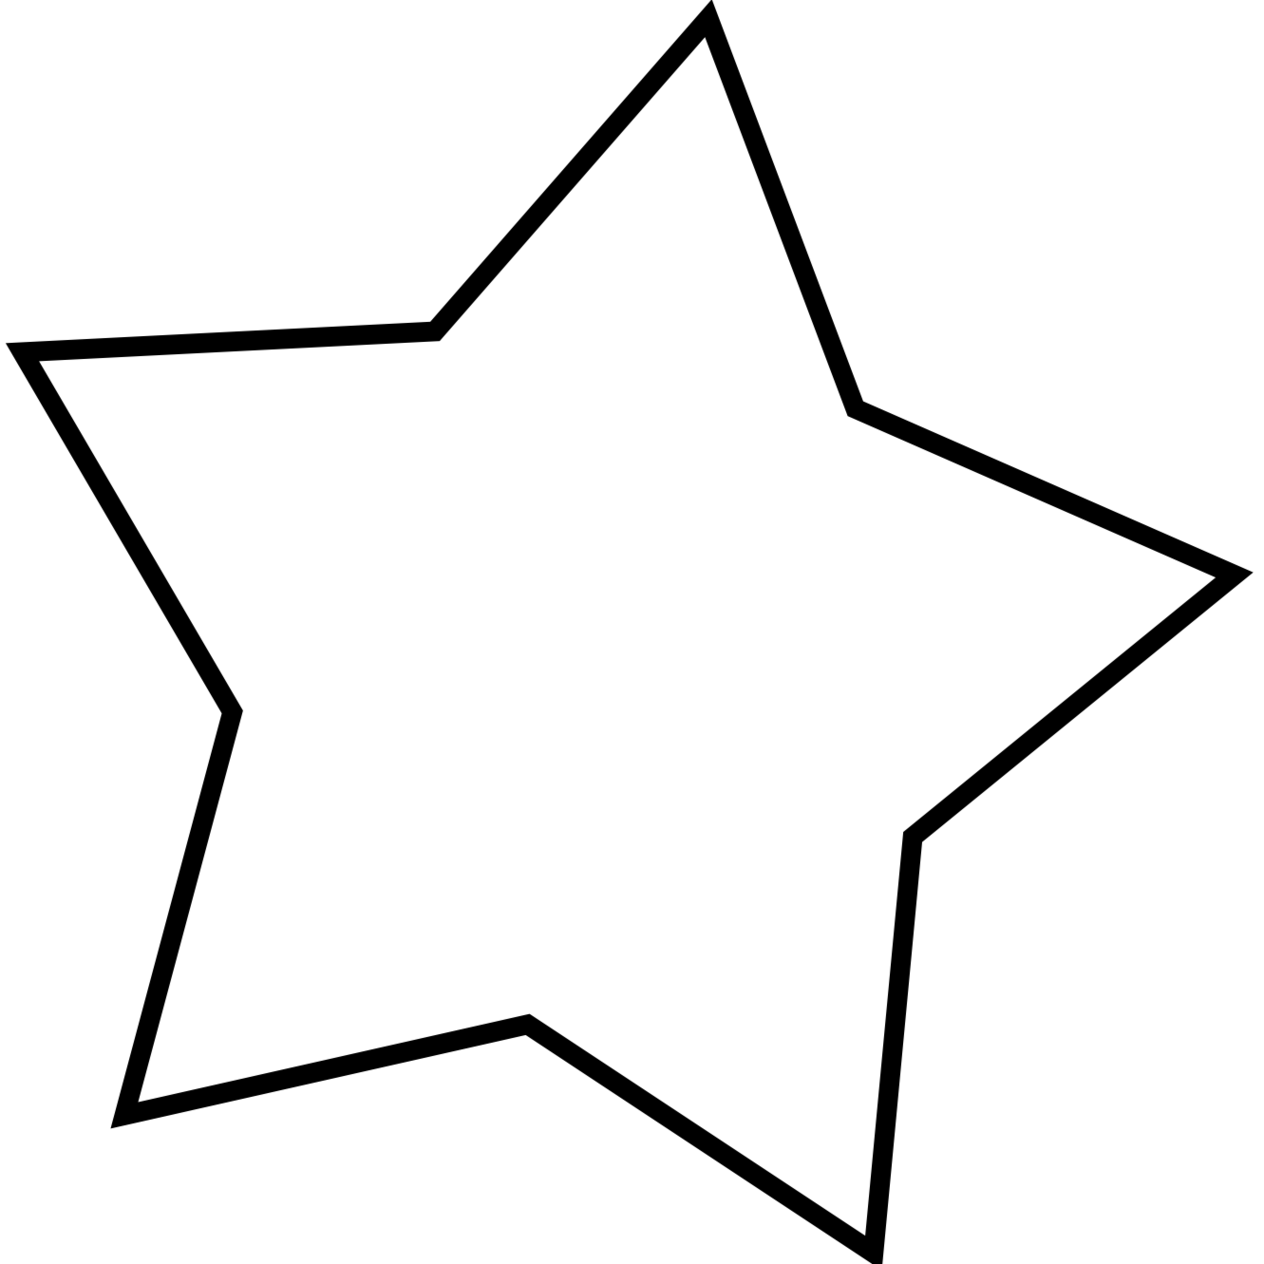 Star Clipart Png Black And White Clipart-star clipart png black and white clipartall-14